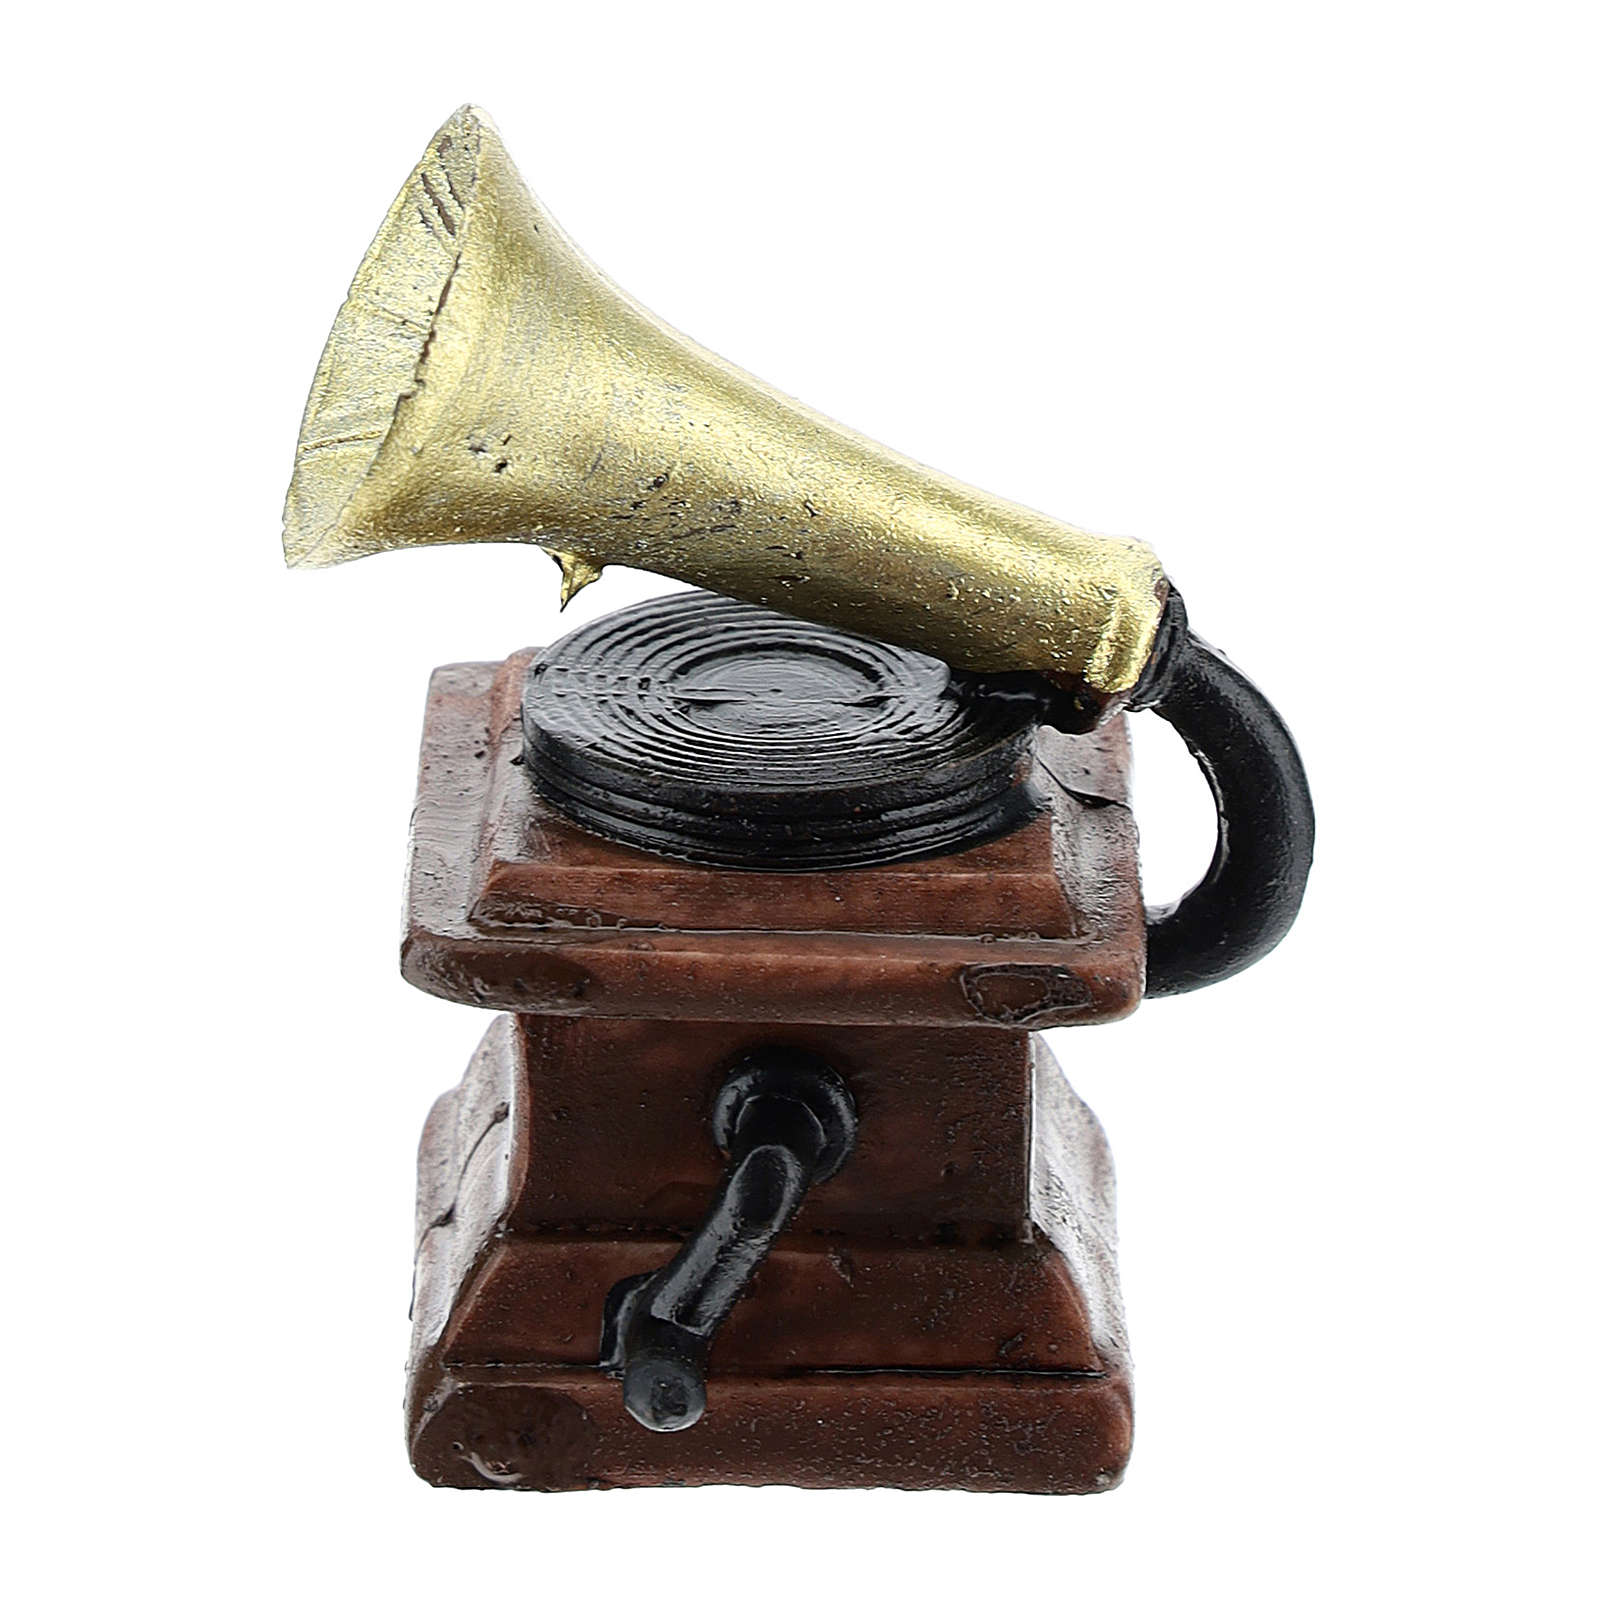 Gramophone in resin 5x3x3 cm, for 8-10 cm nativity 4